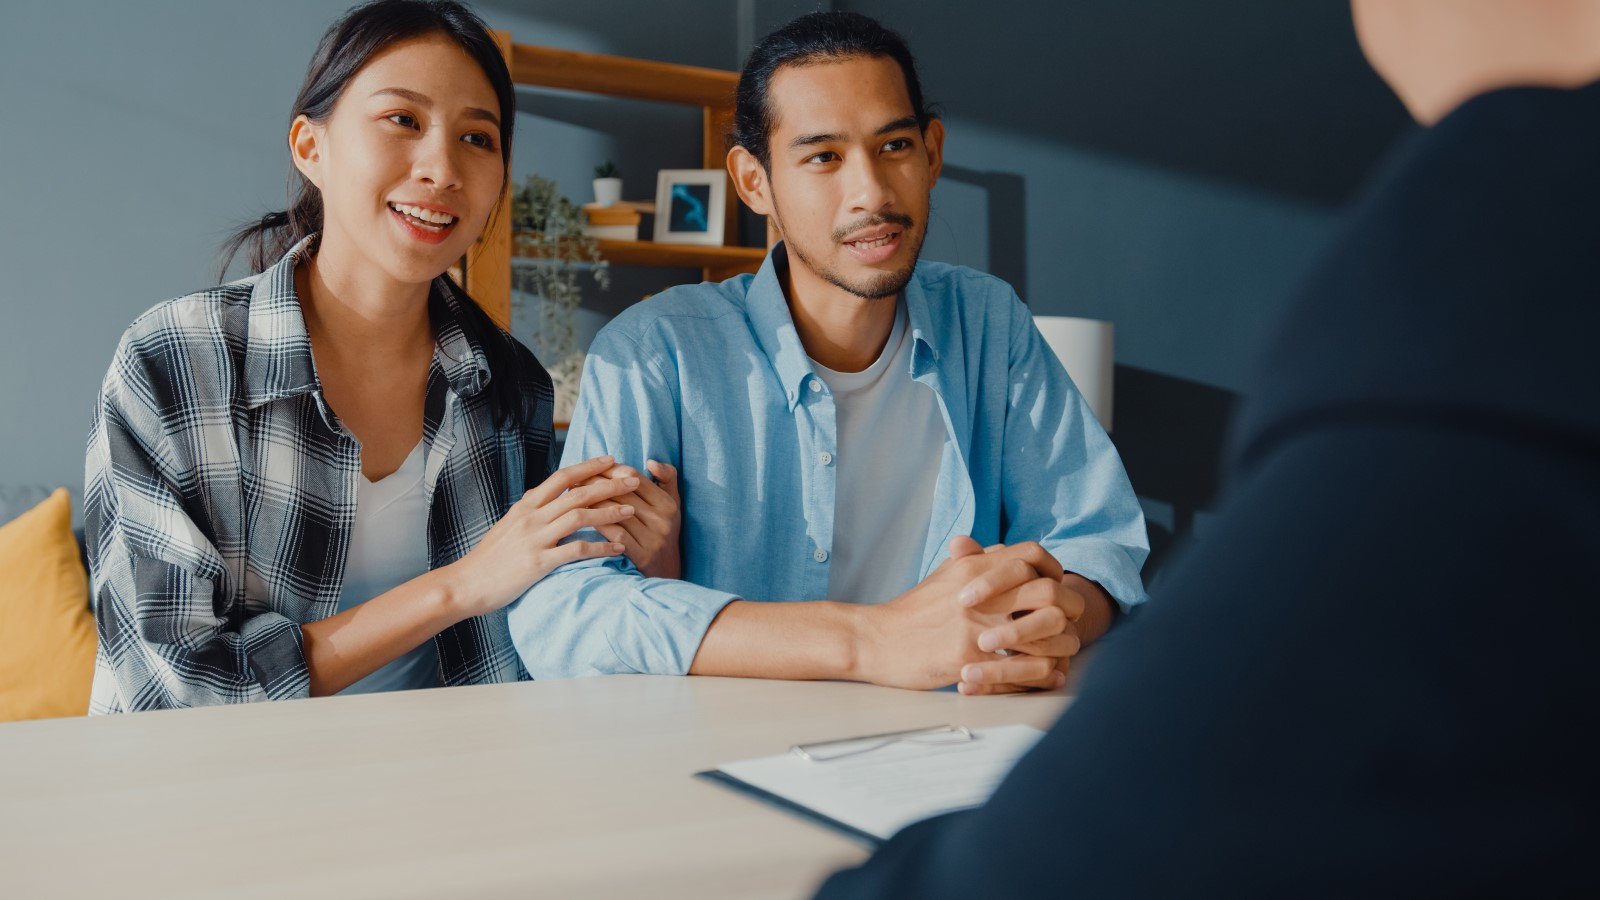 A young Asian couple discusses loan options with their lender.